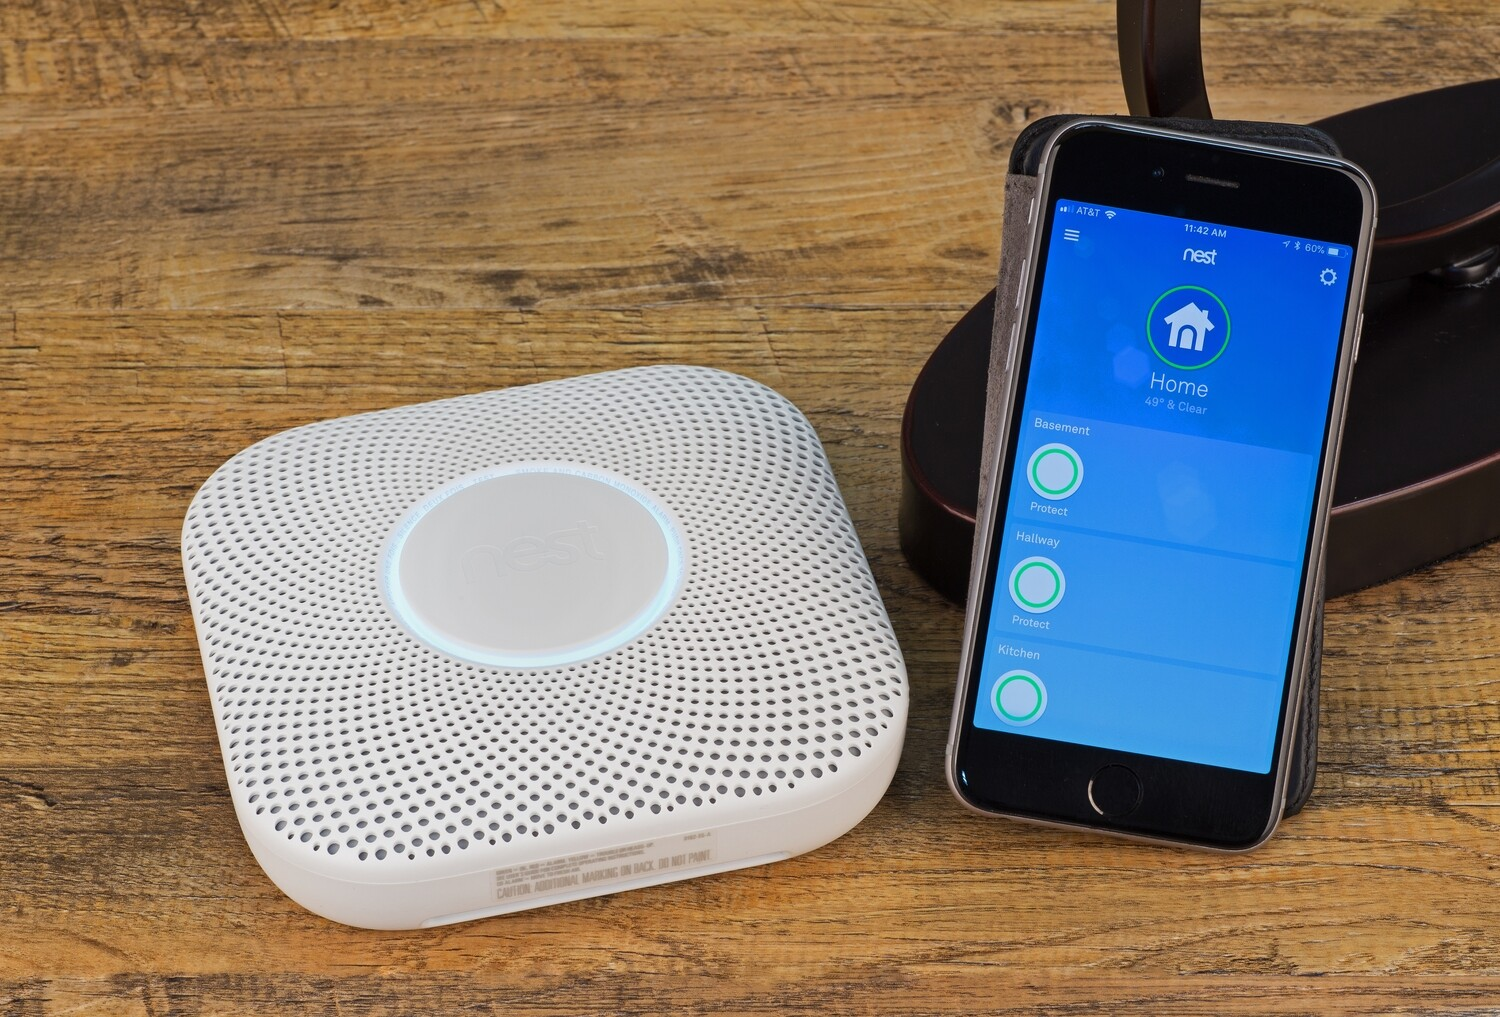 Nest Whole Home Automation with Nest Pro Install